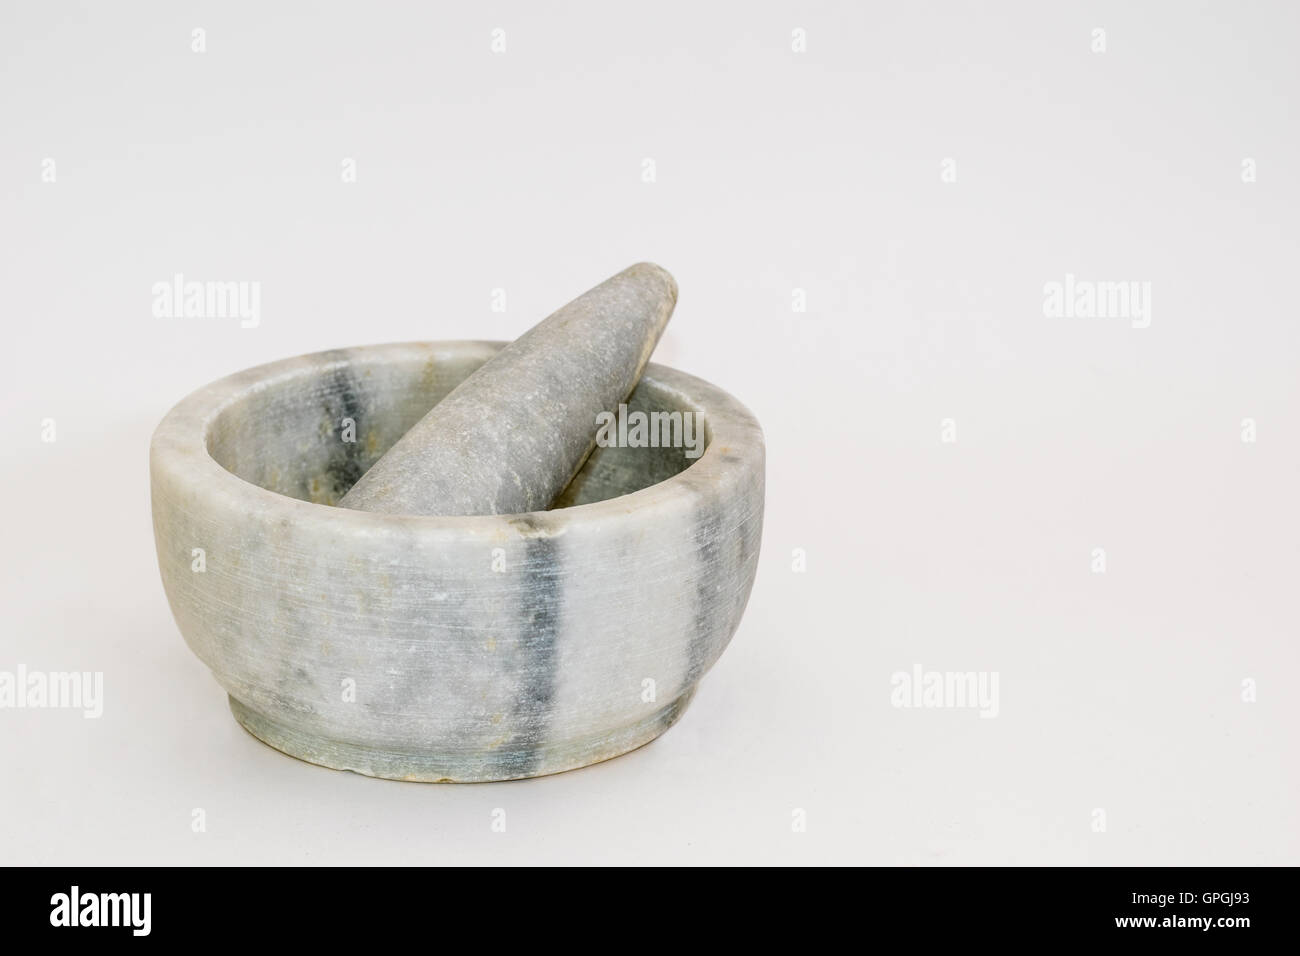 stone grinder stockfotos stone grinder bilder alamy. Black Bedroom Furniture Sets. Home Design Ideas